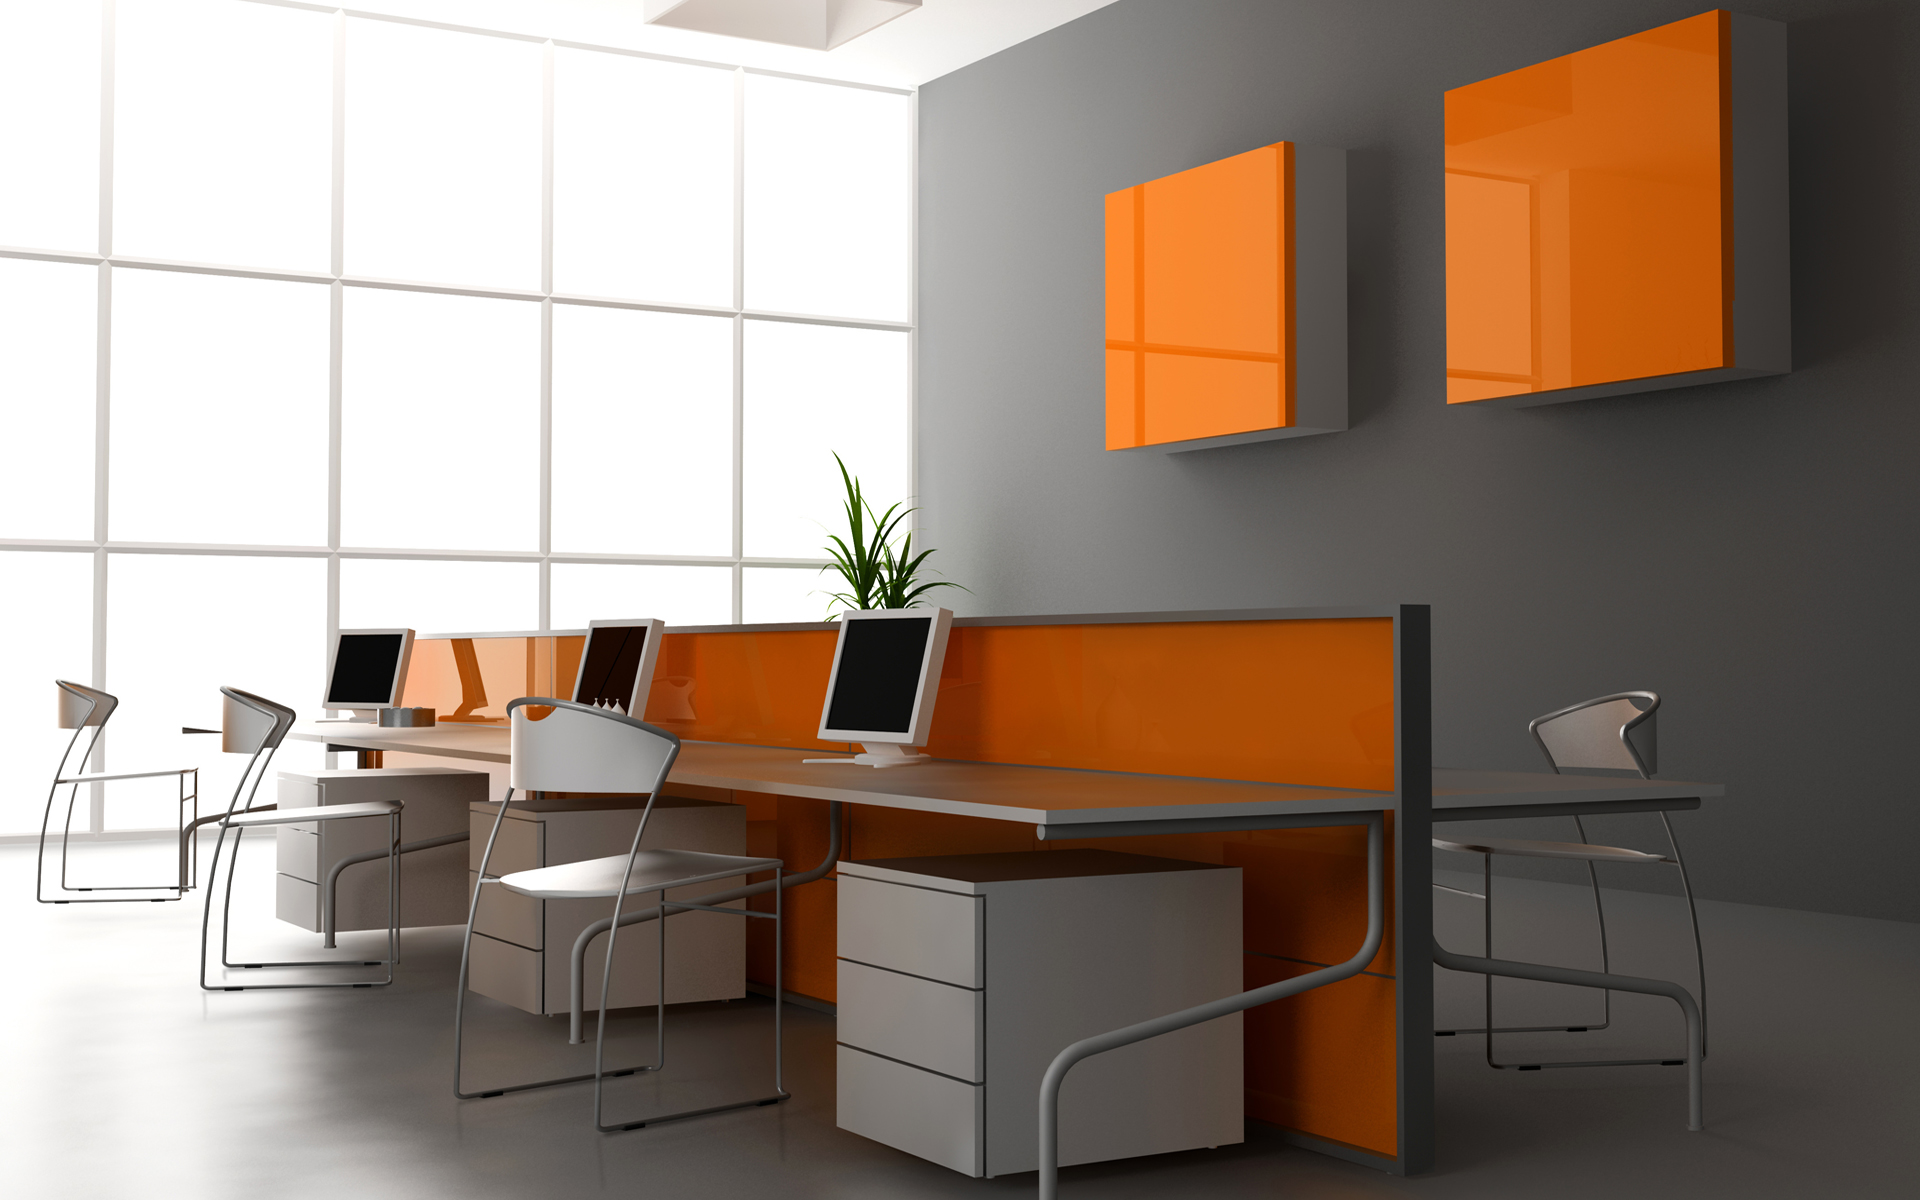 Office Room Design Office Room Design M Cientounoco